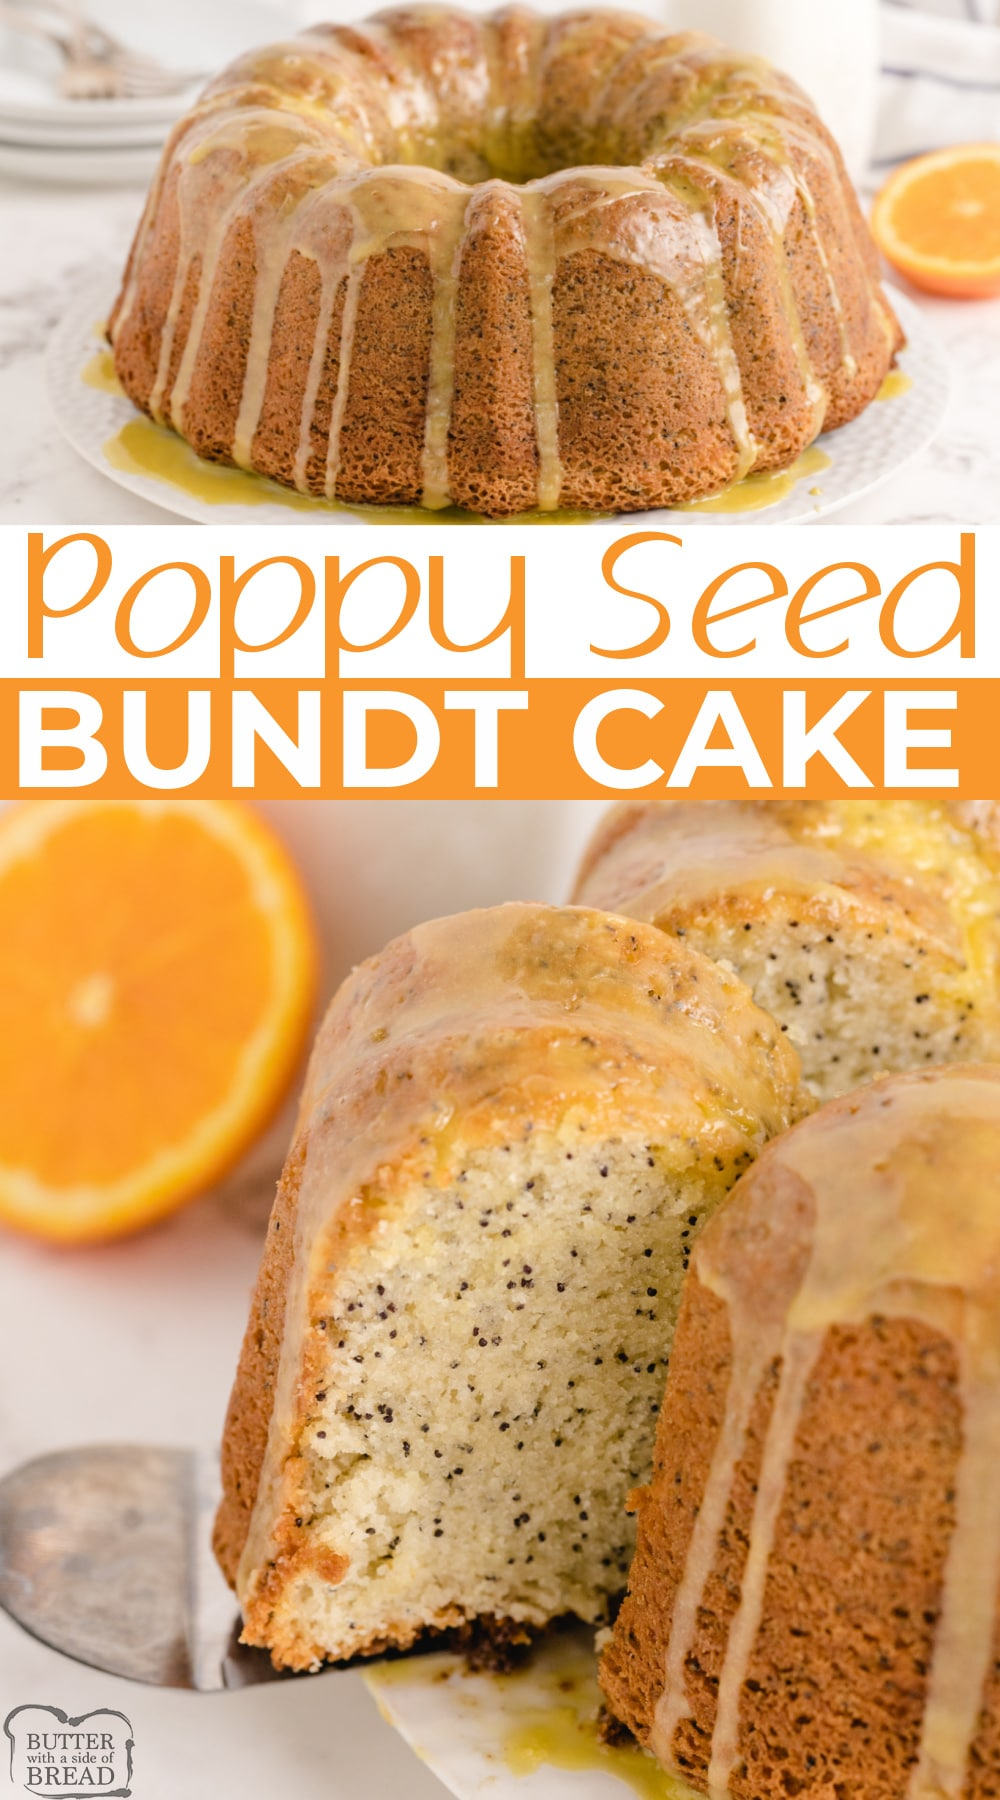 Poppy Seed Bundt Cake made from scratch with a delicious orange flavored glaze. Perfect cake recipe for breakfast, dessert or even a snack!